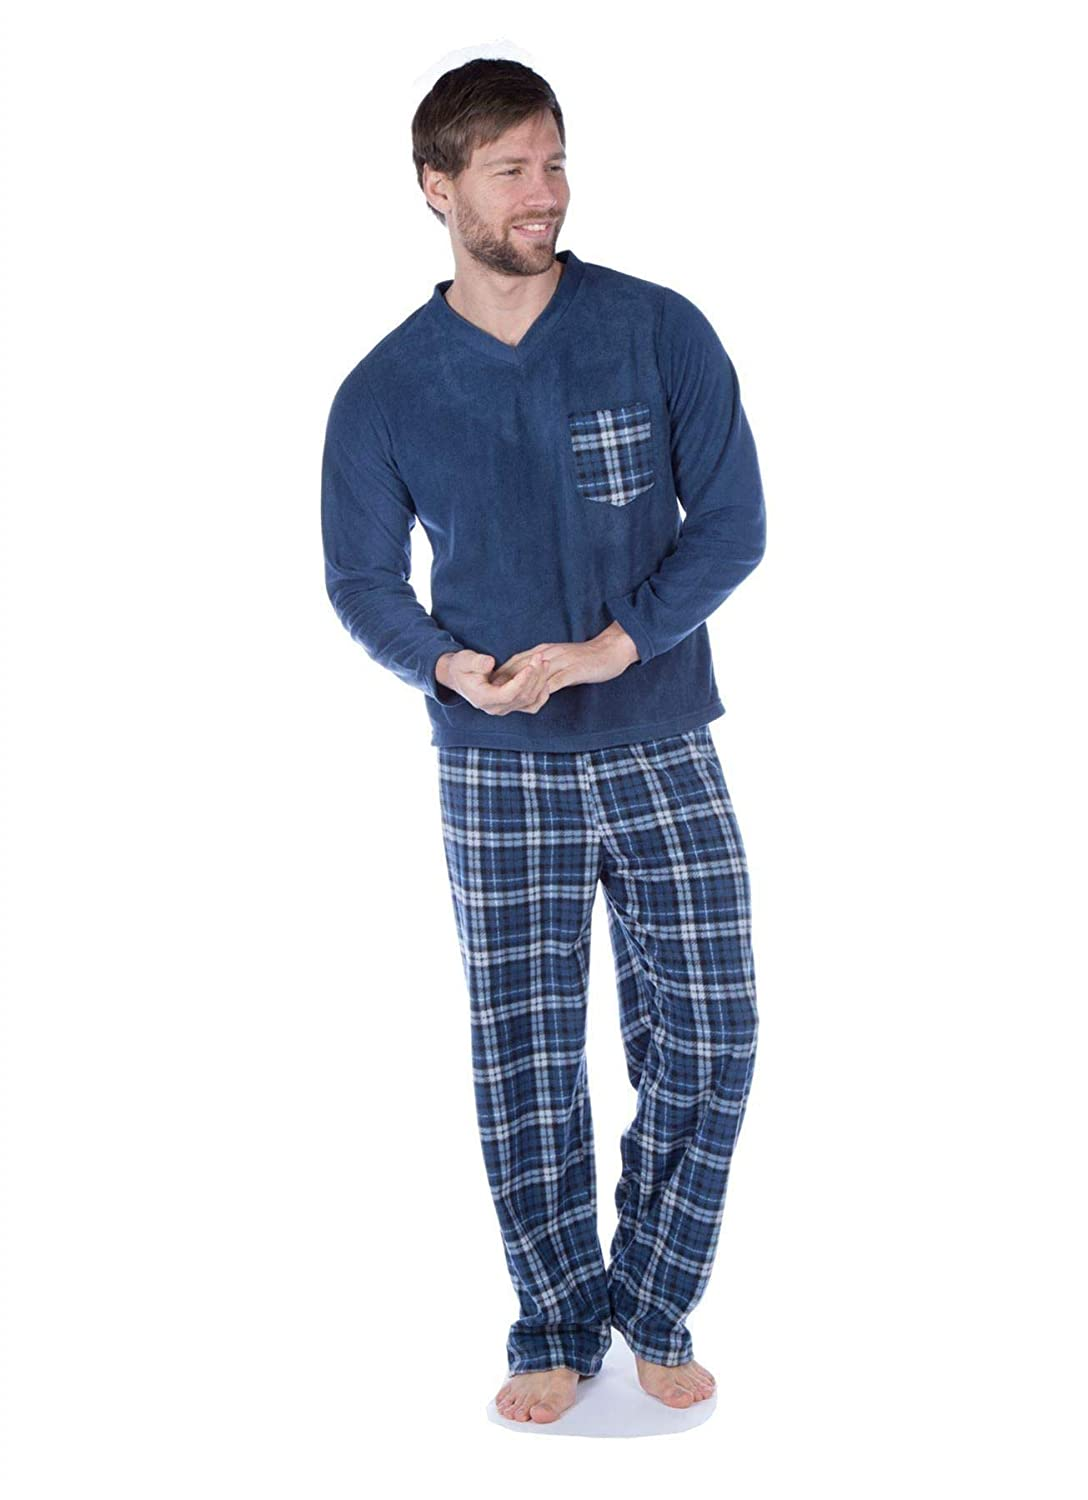 Harvey James Mens Fleece Pyjama Set V Neck Check Pocket Heritage Lounge Wear PJs Does not Apply